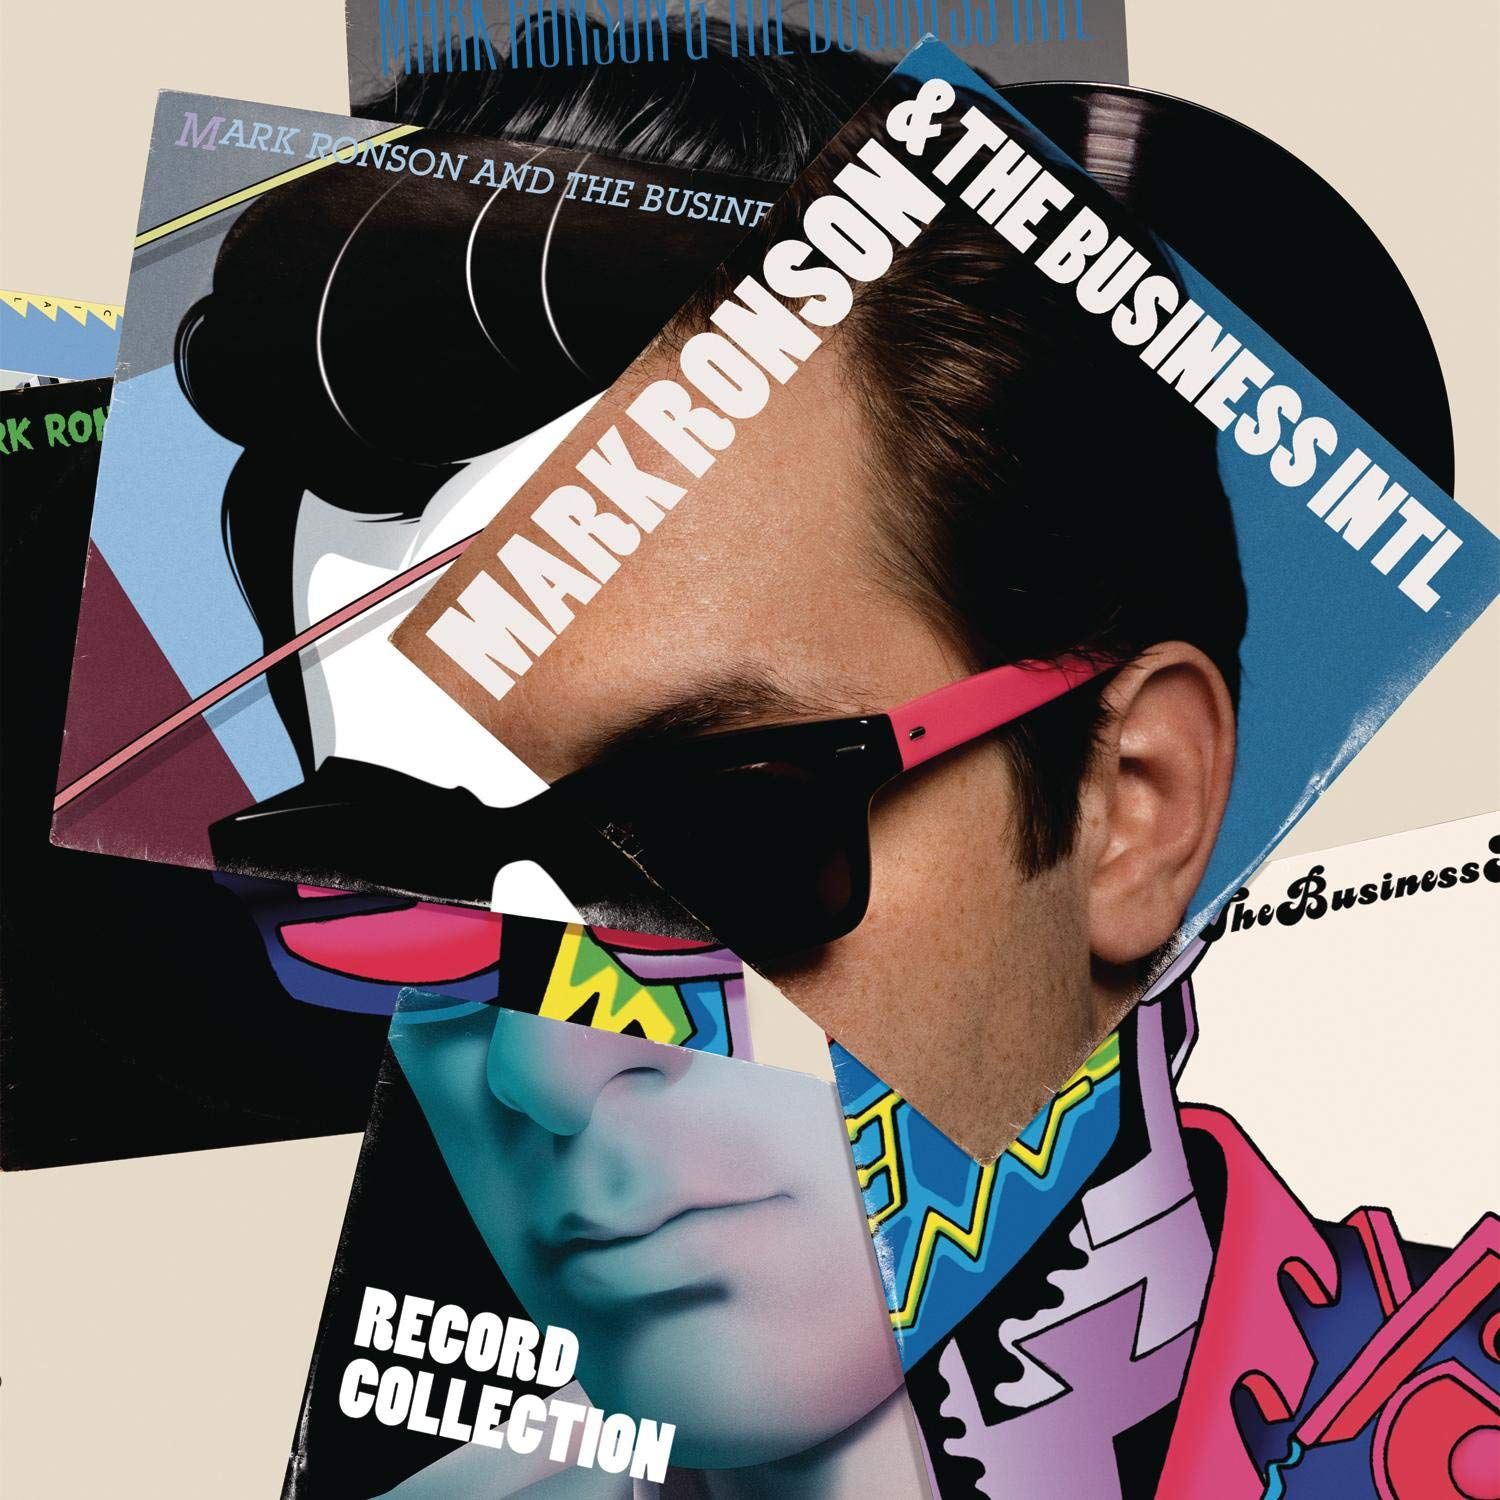 Mark Ronson & The Business Intl – Record Collection (2010) [FLAC]